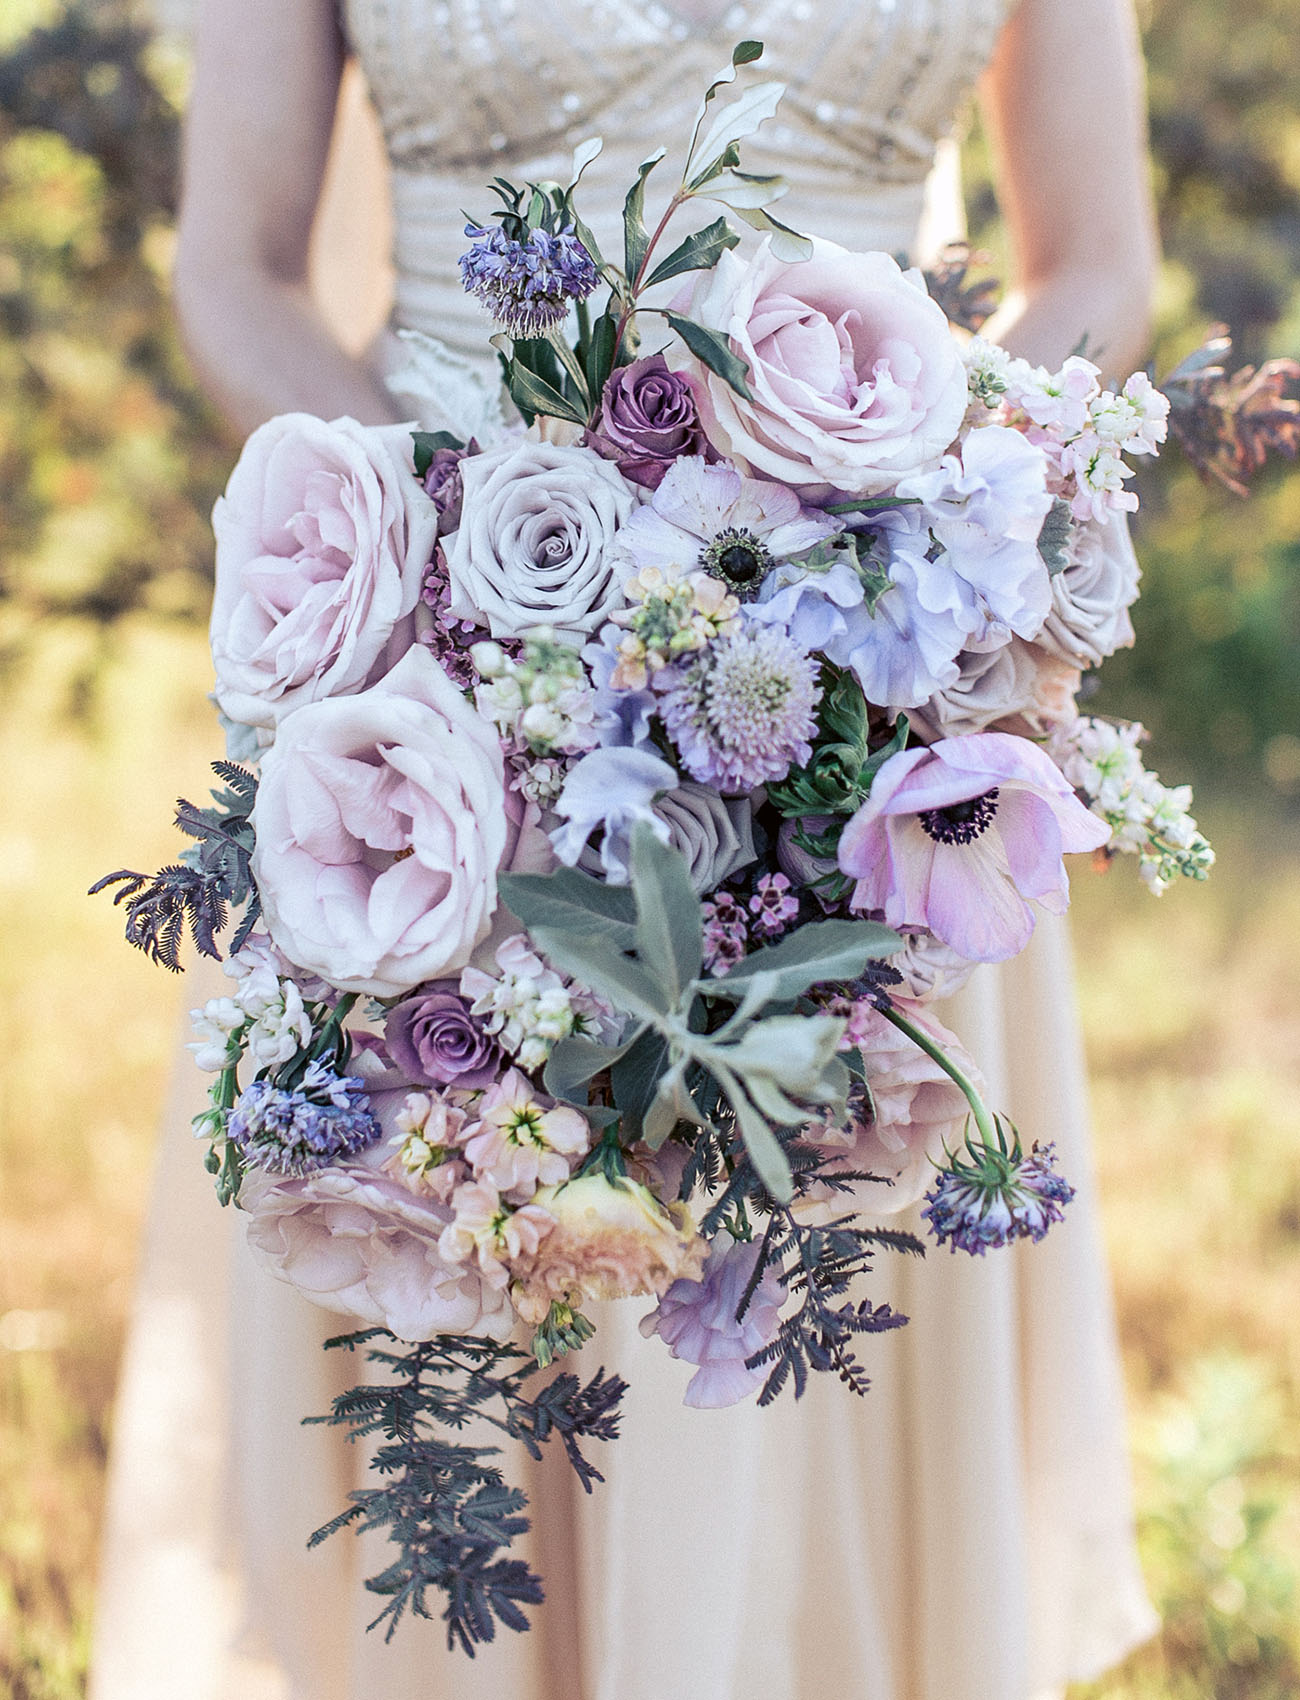 The Most Amazing Floral Arch We've Ever Seen